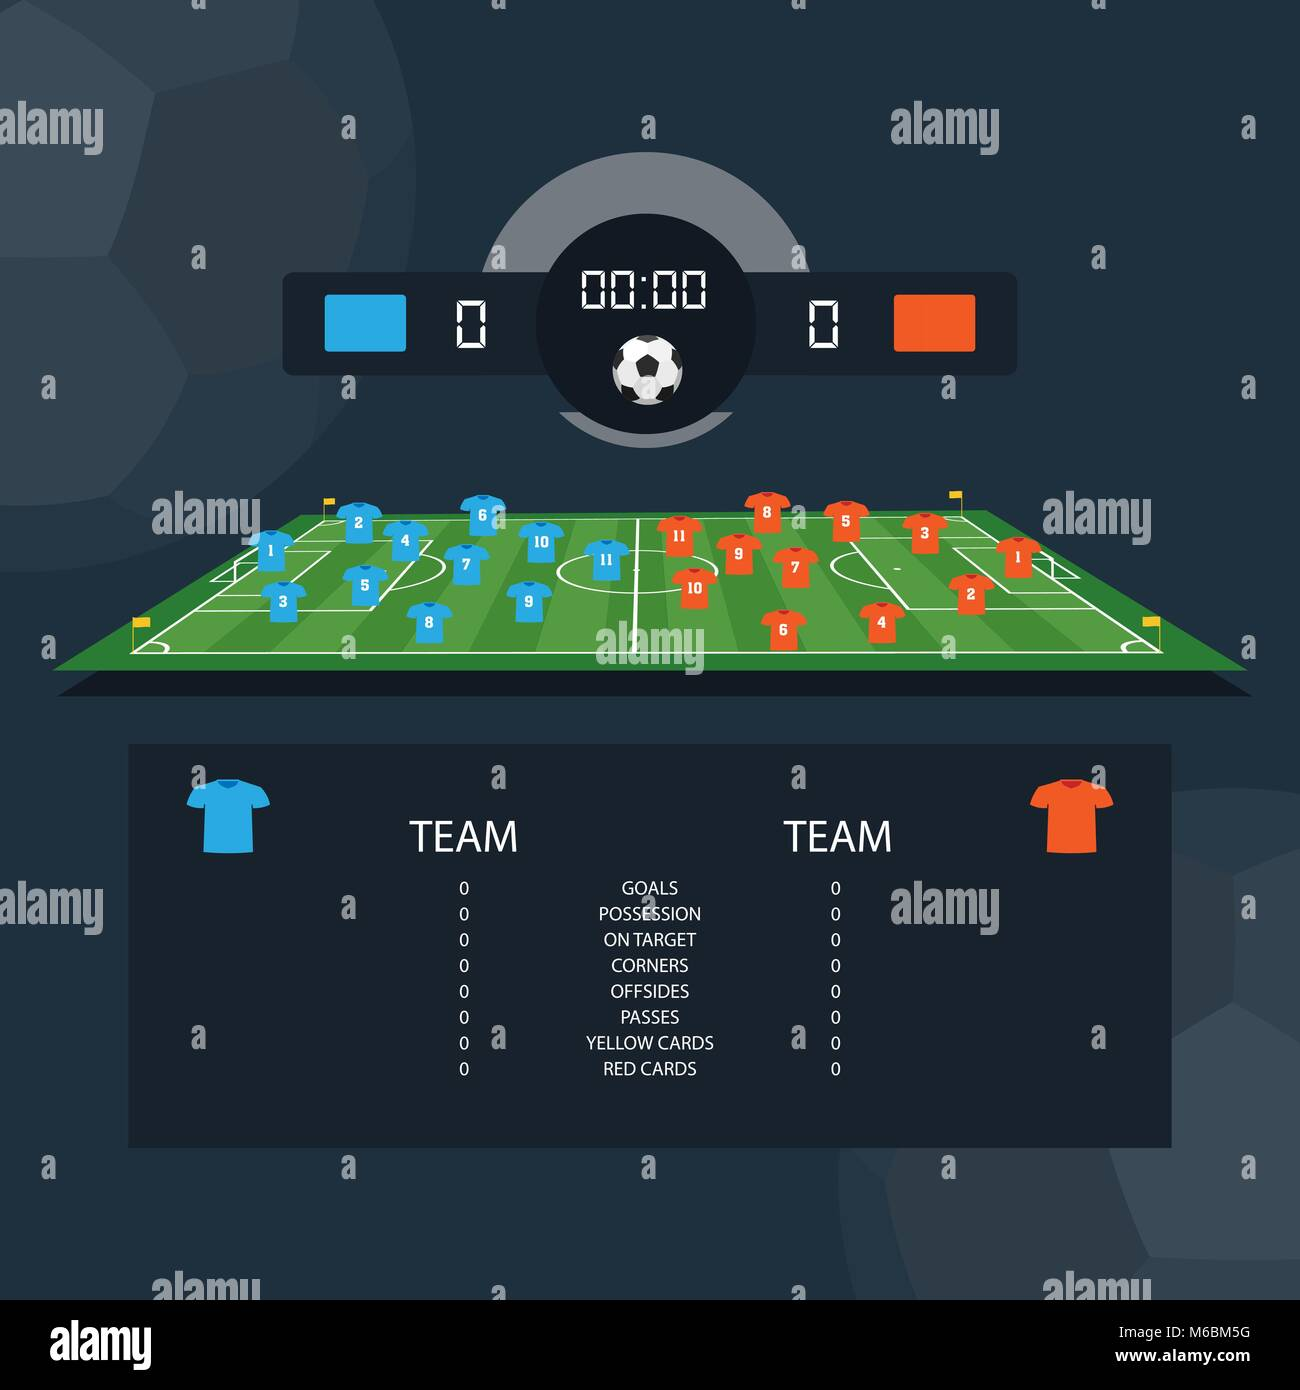 Soccer match scoreboard and statistics plan between two example teams. Flat design. Vector illustration - Stock Image